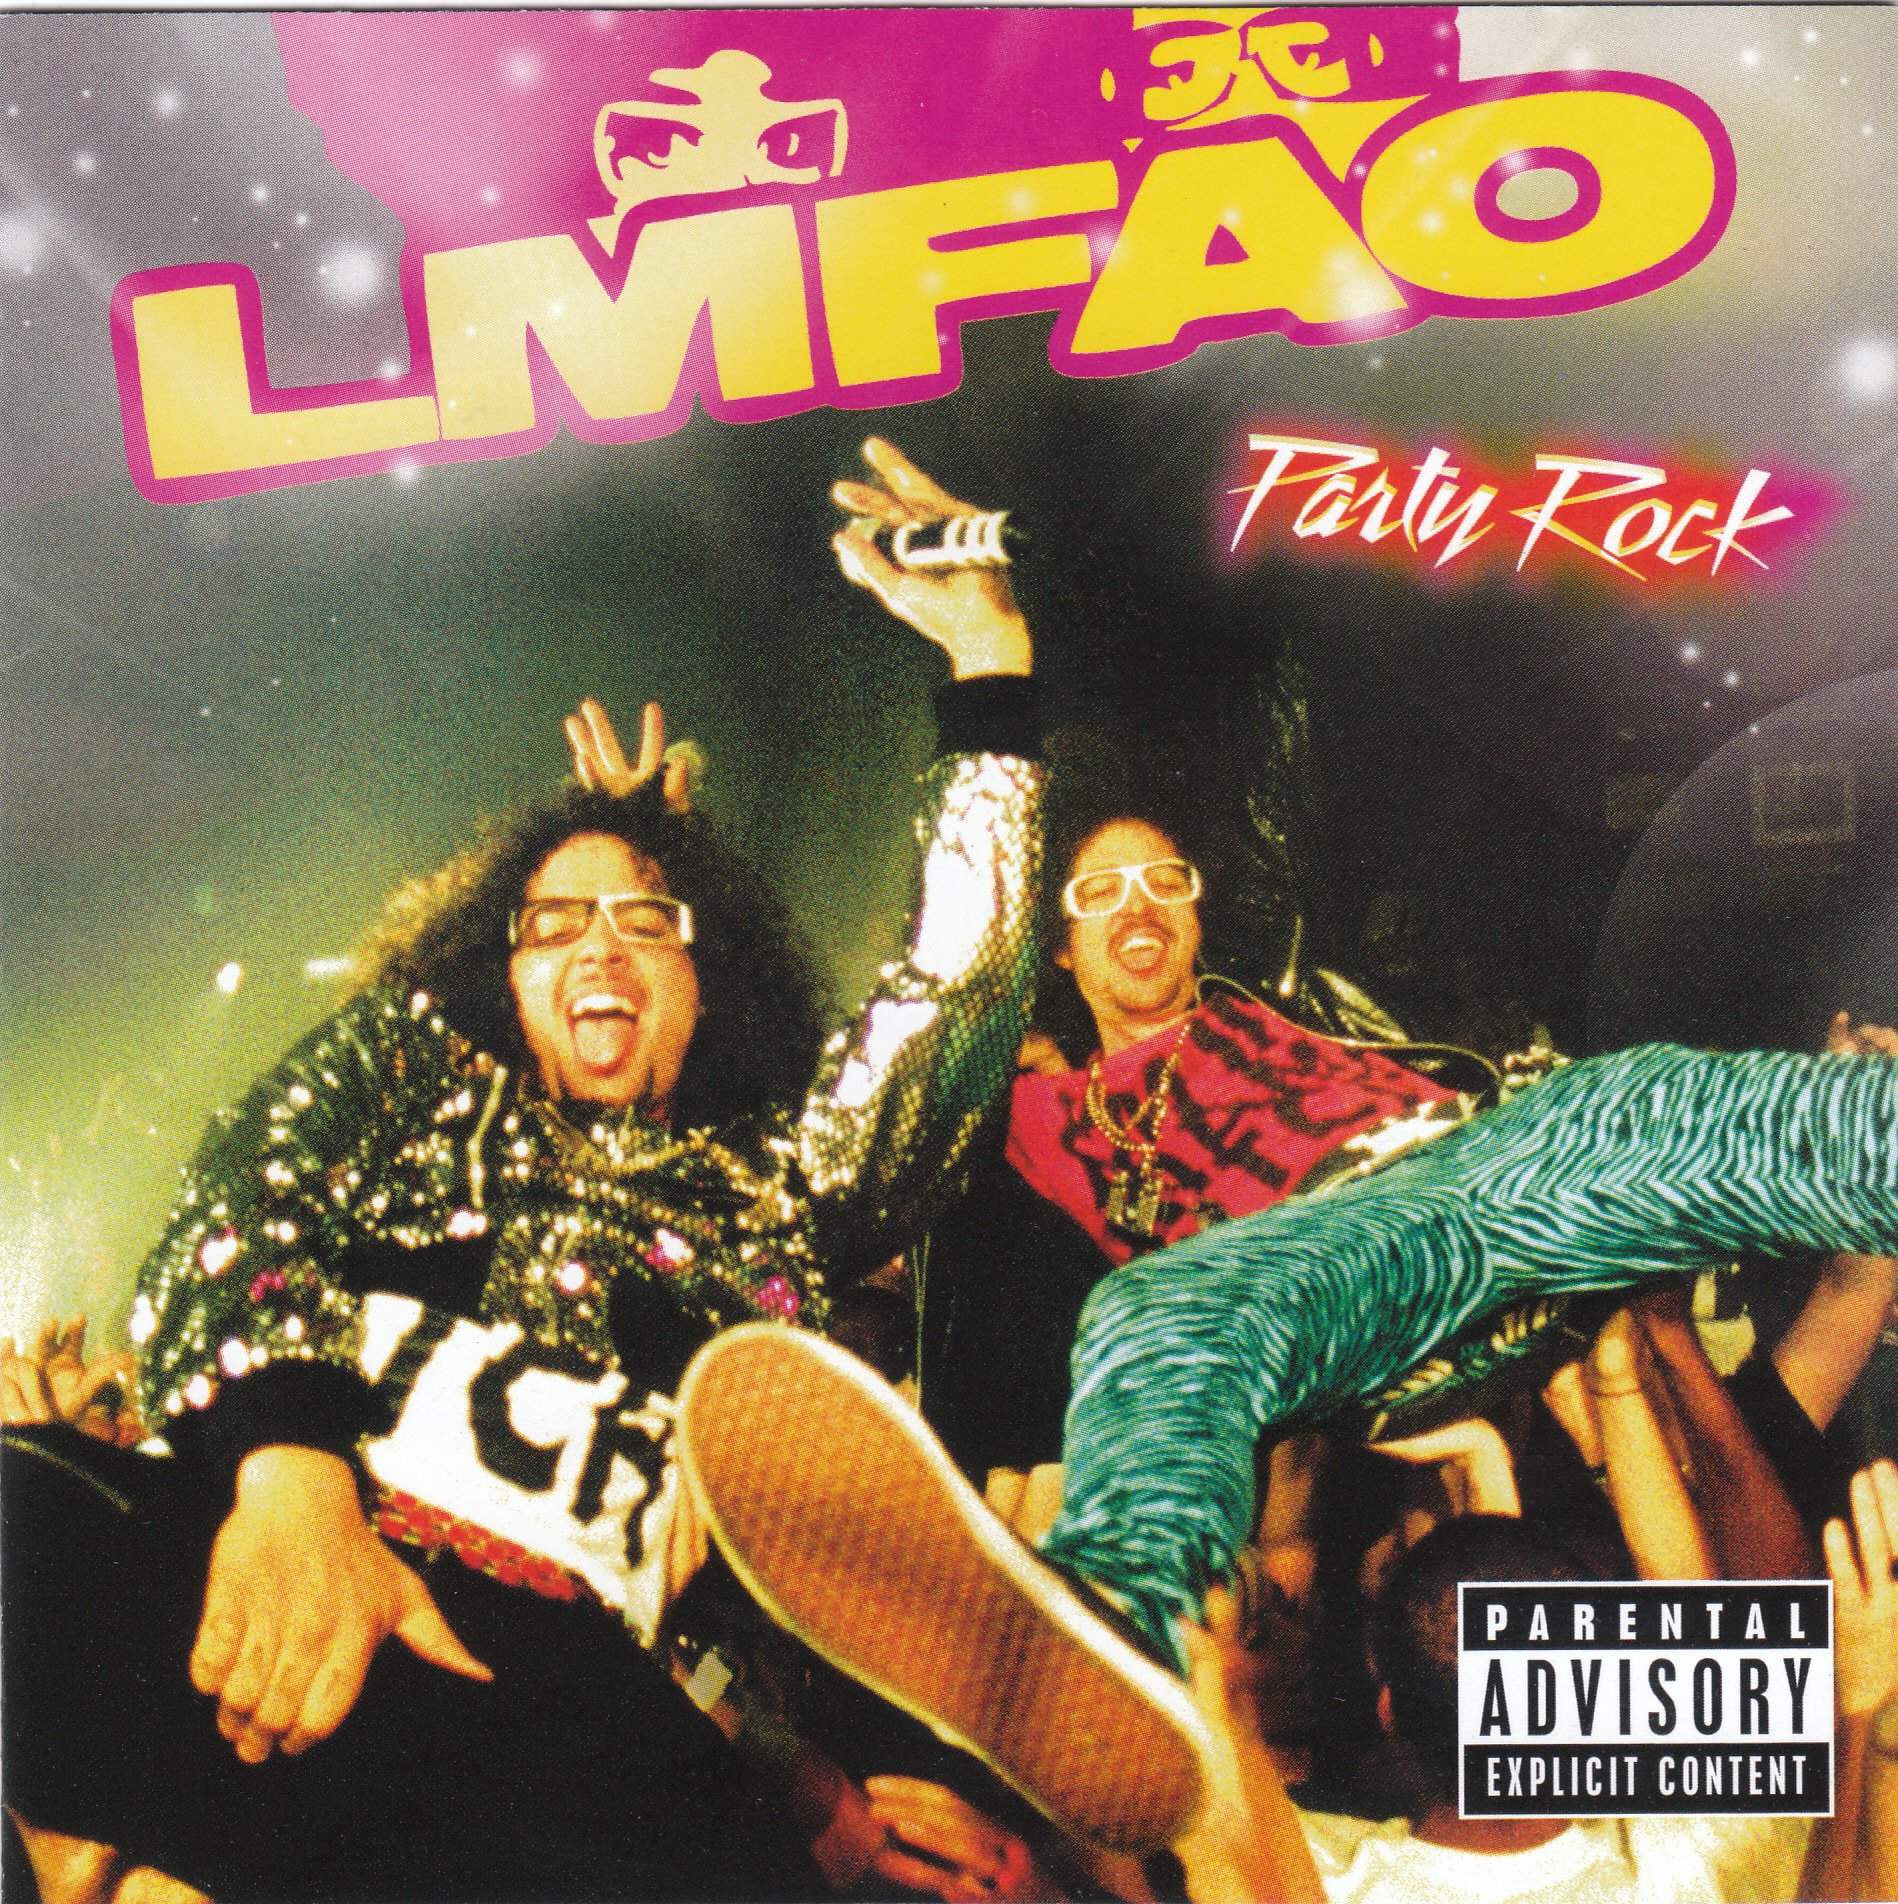 MP3 de Lmfao Im In Miami Bitch - foxmusicalive